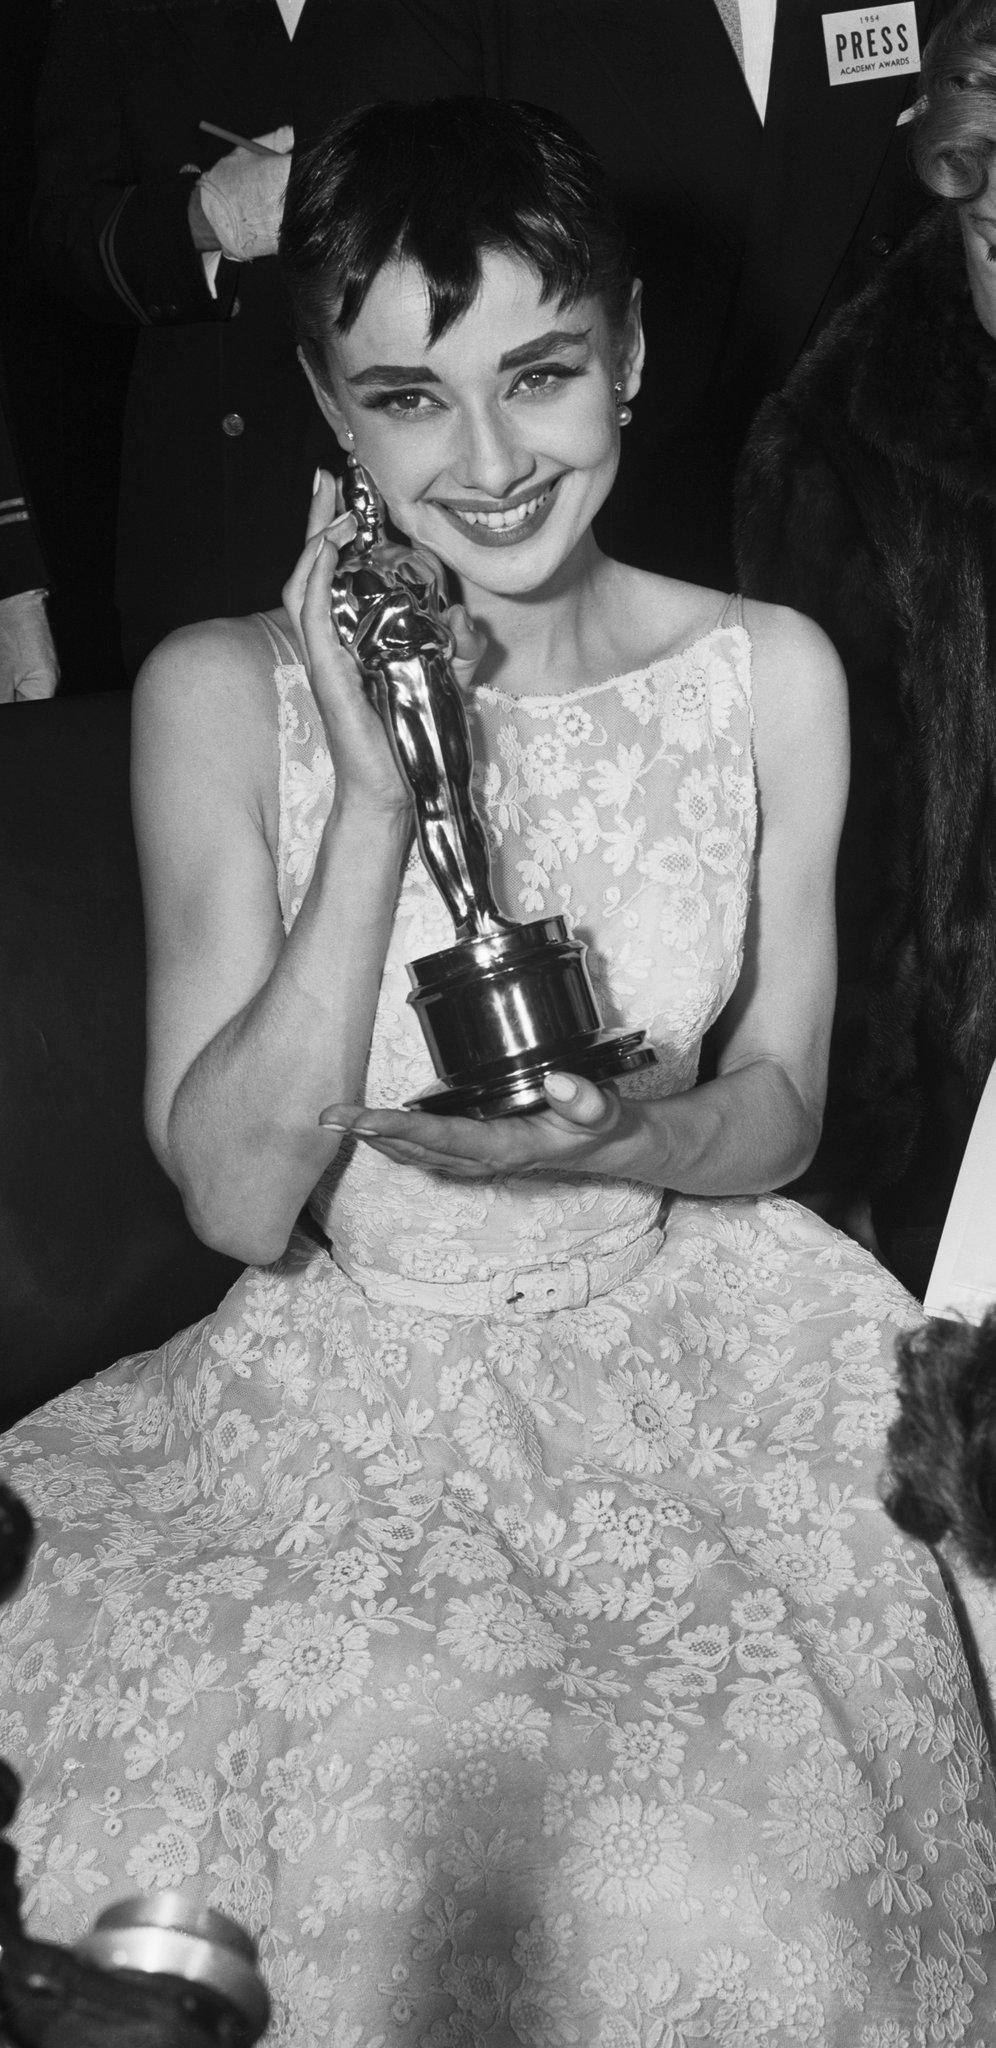 """Ms. Hepburn wearing Givenchy at the 1954 Academy Awards where she received the Best Actress Oscar for """"Roman Holiday.""""CreditBettmann/Getty Images"""